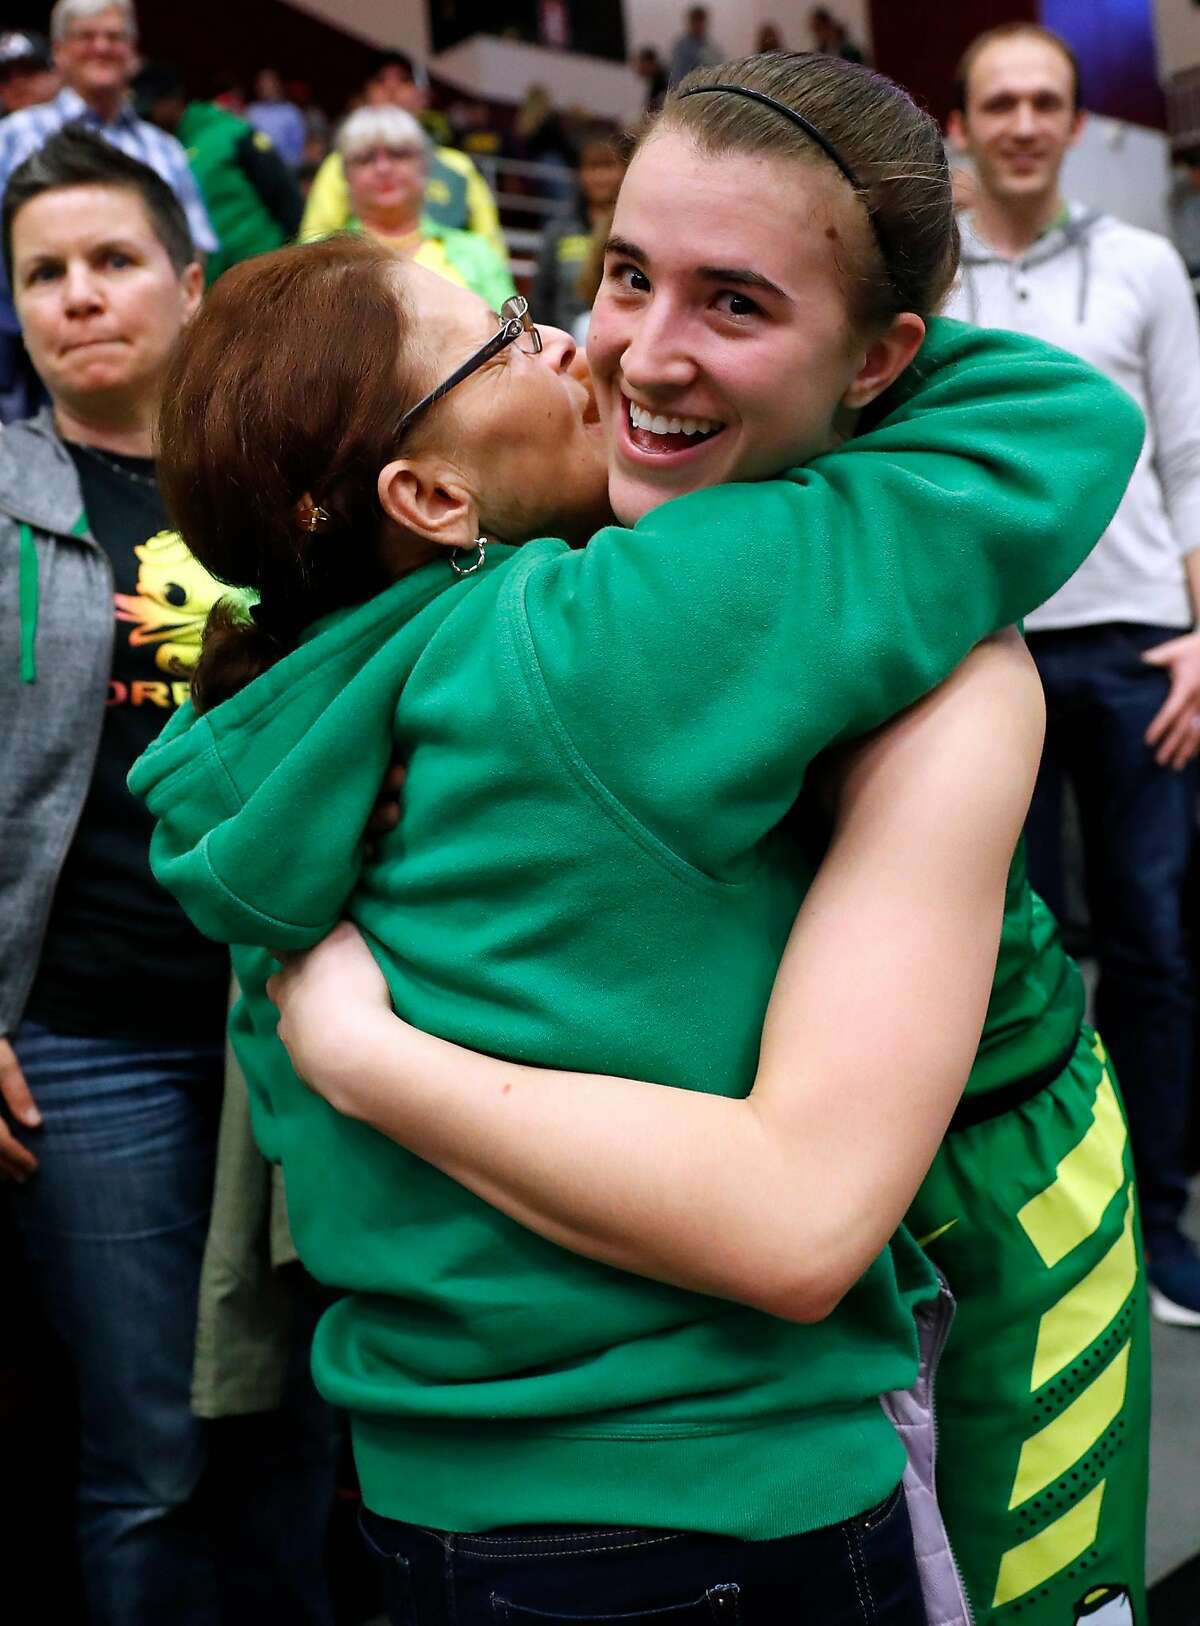 Oregon's Sabrina Ionescu gets a hug after the Ducks' 88-48 win over Stanford during Pac 12 Women's basketball game at Maples Pavilion in Stanford, Calif., on Sunday, February 10, 2019.